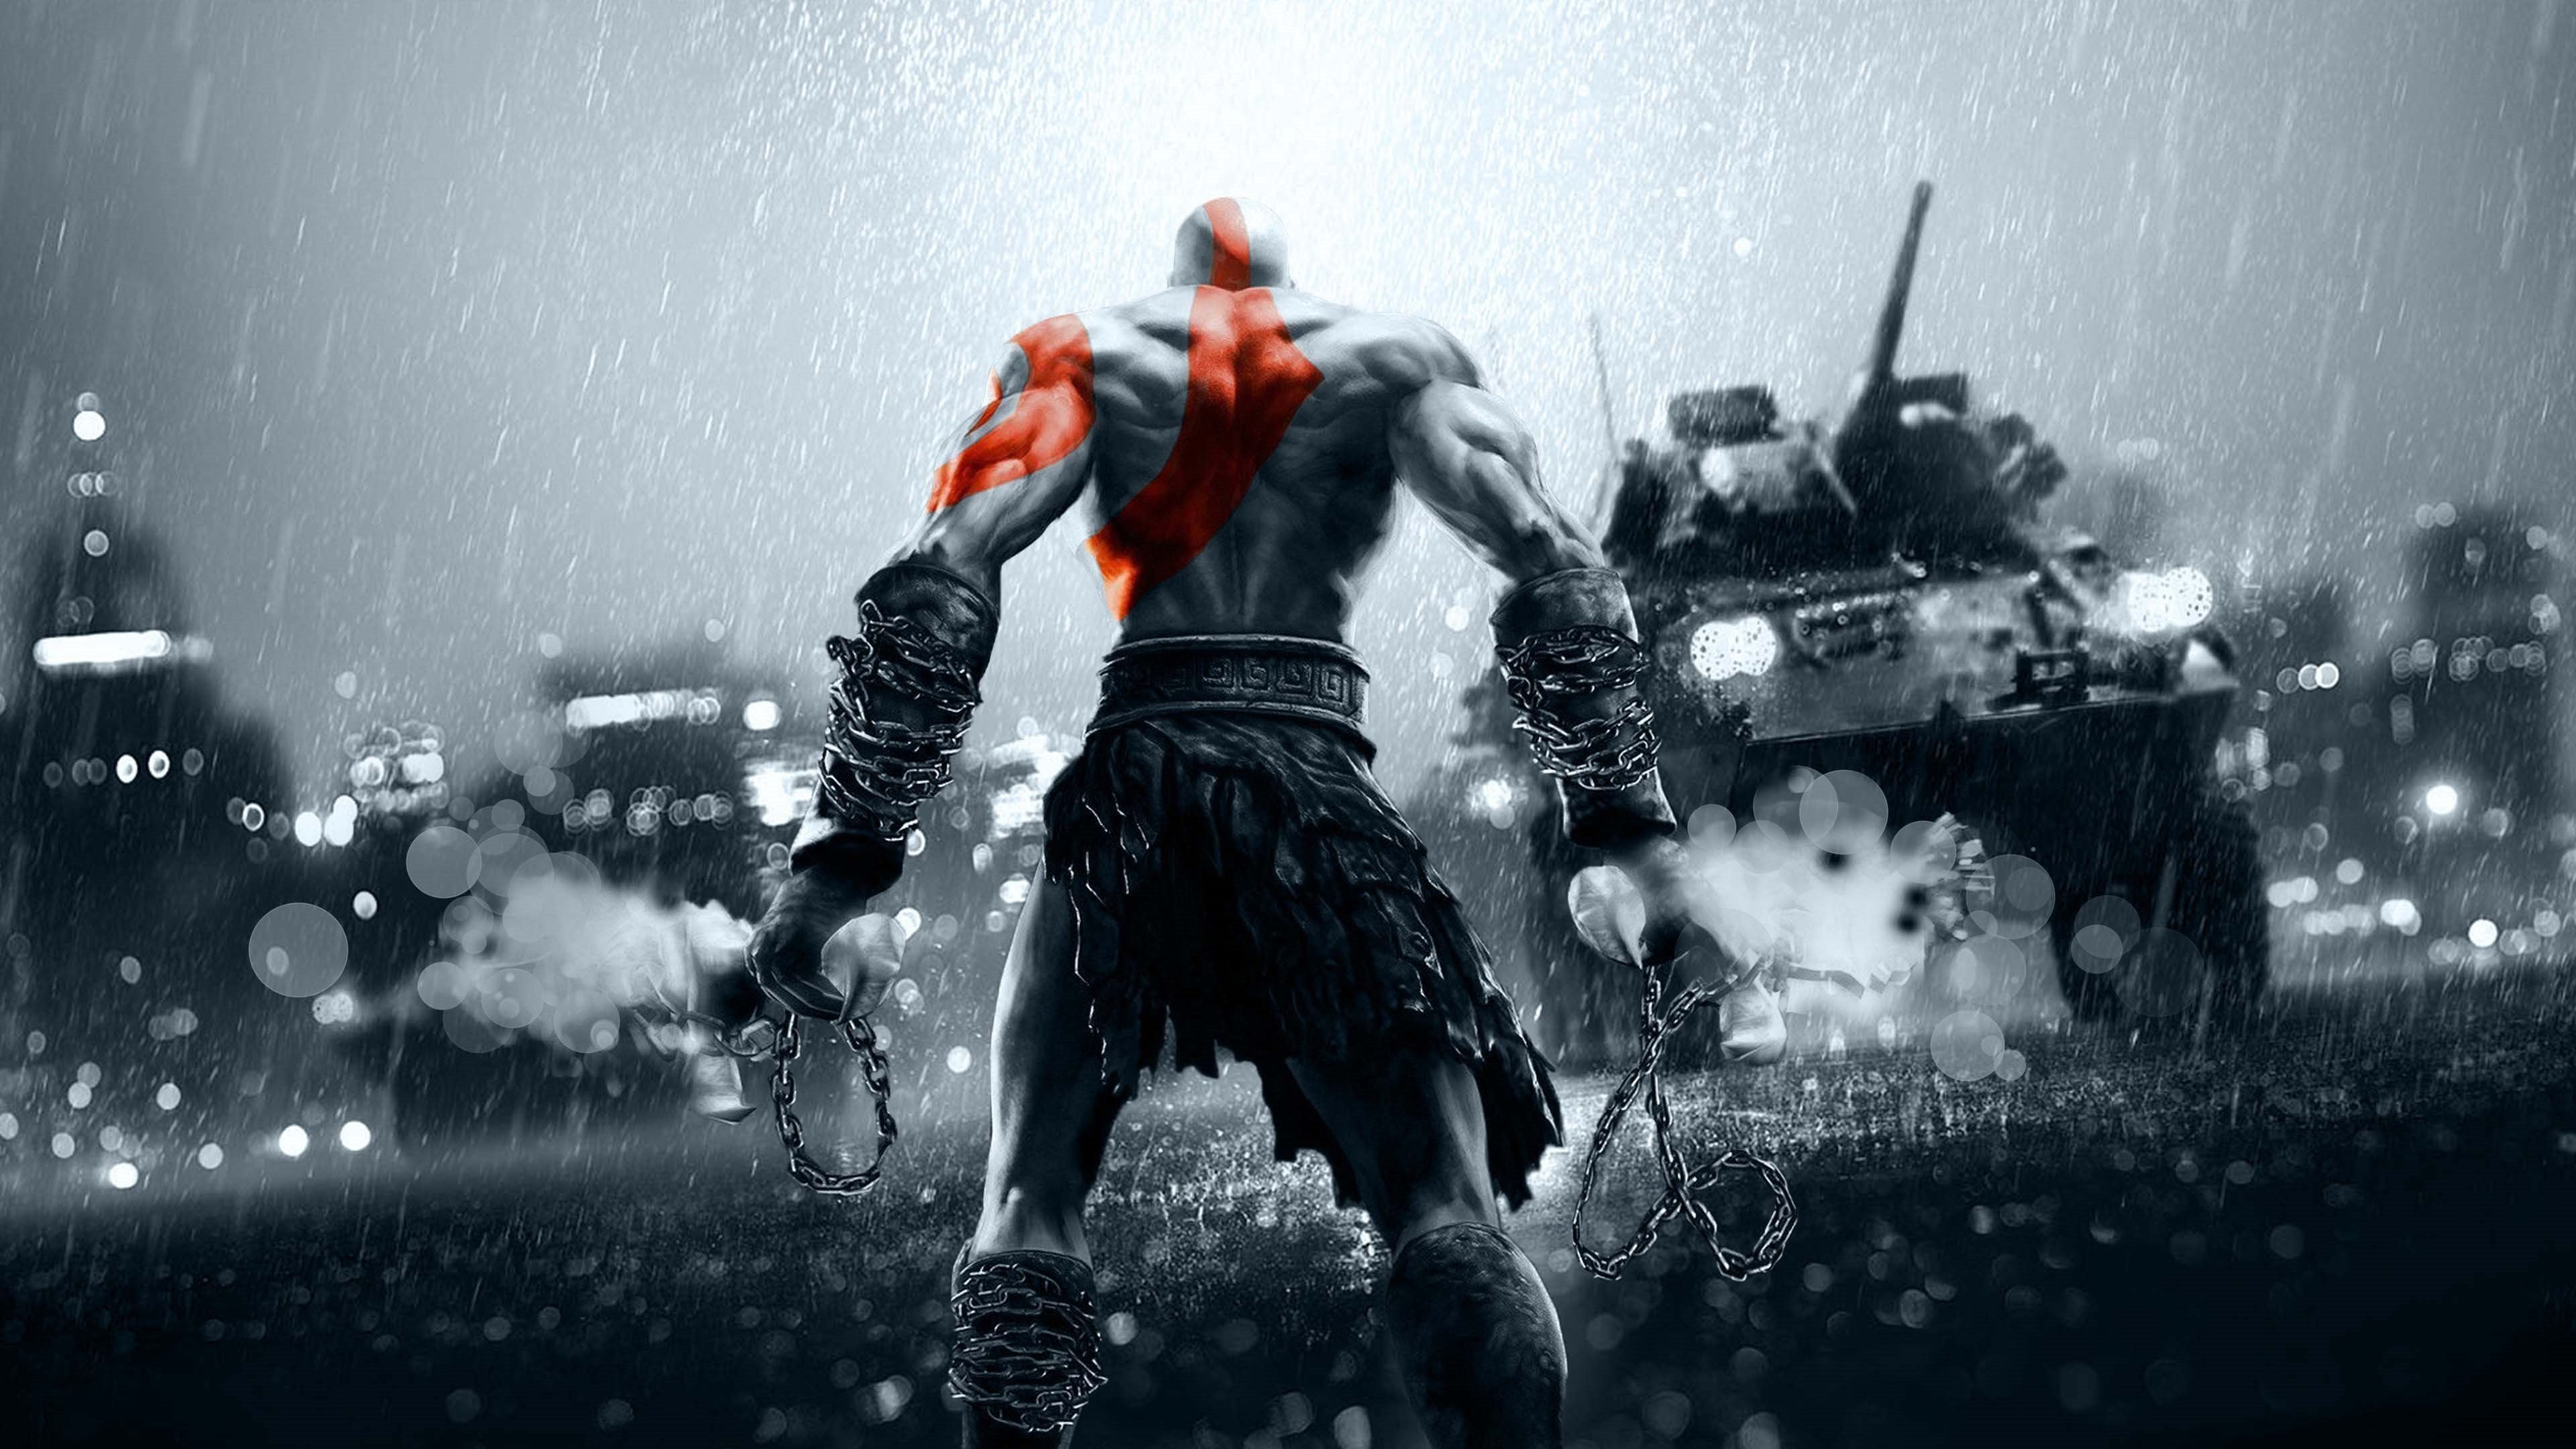 Adventureous Pic From God Of War In 2020 Gaming Wallpapers 4k Gaming Wallpaper Gaming Wallpapers Hd